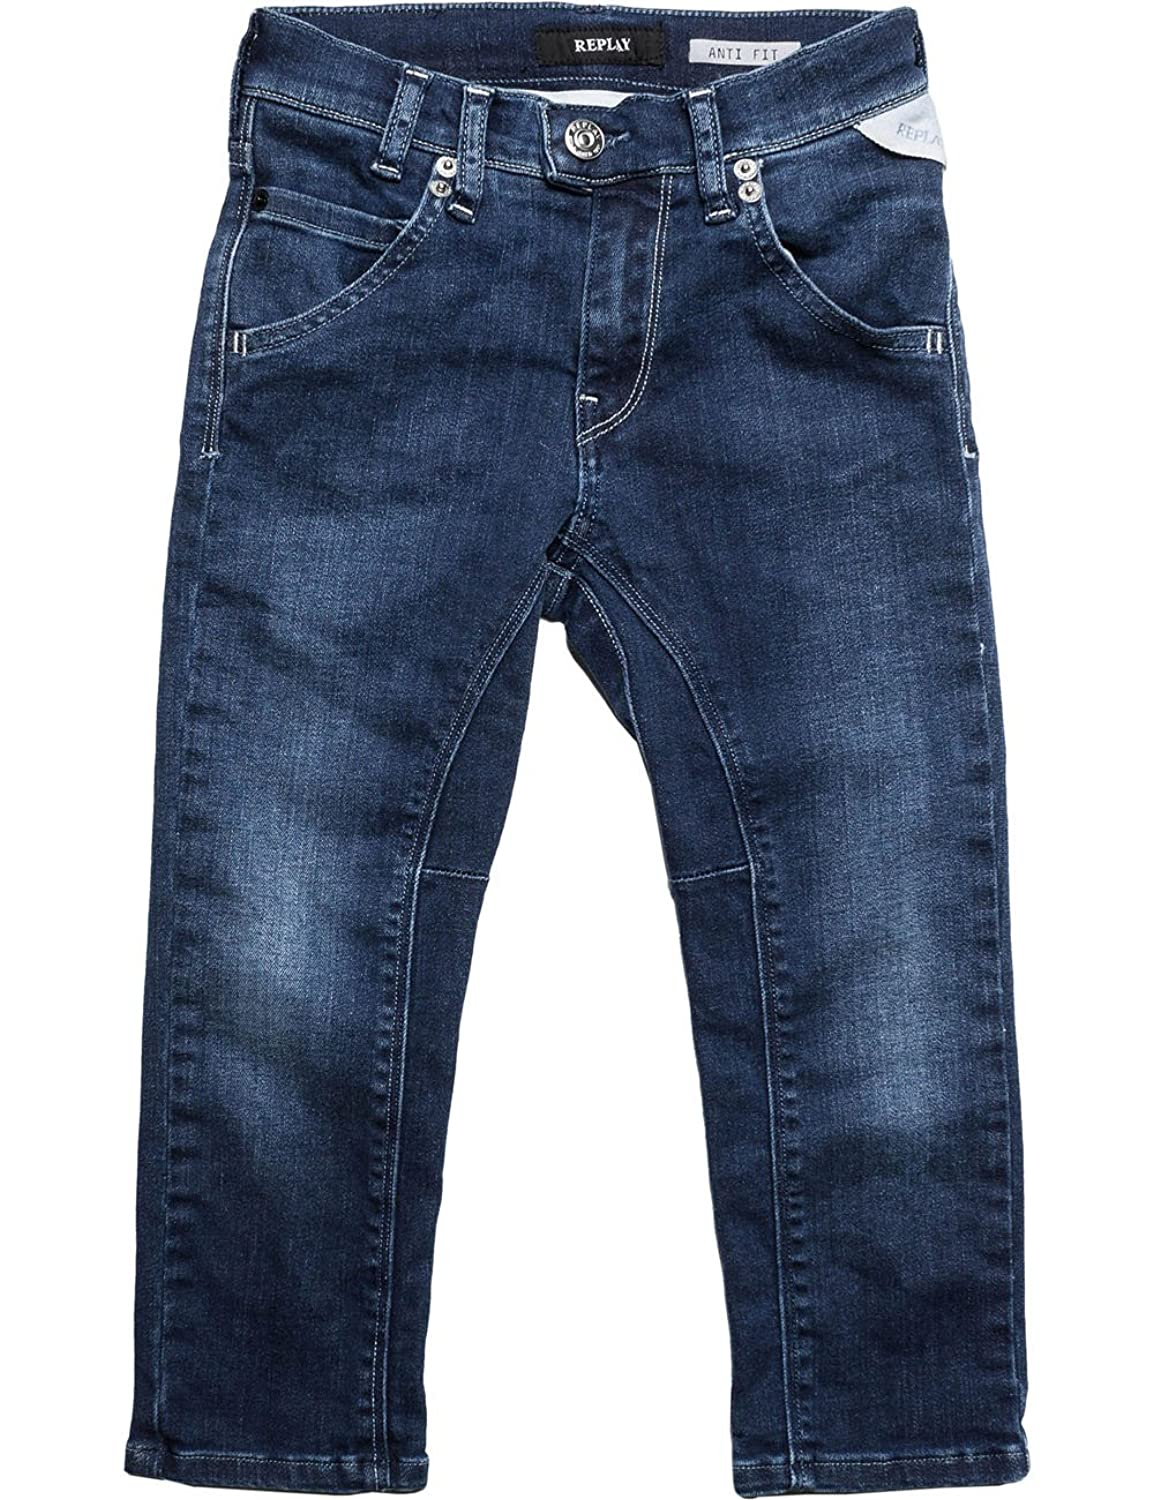 Replay Jungen Jeanshose Jeans